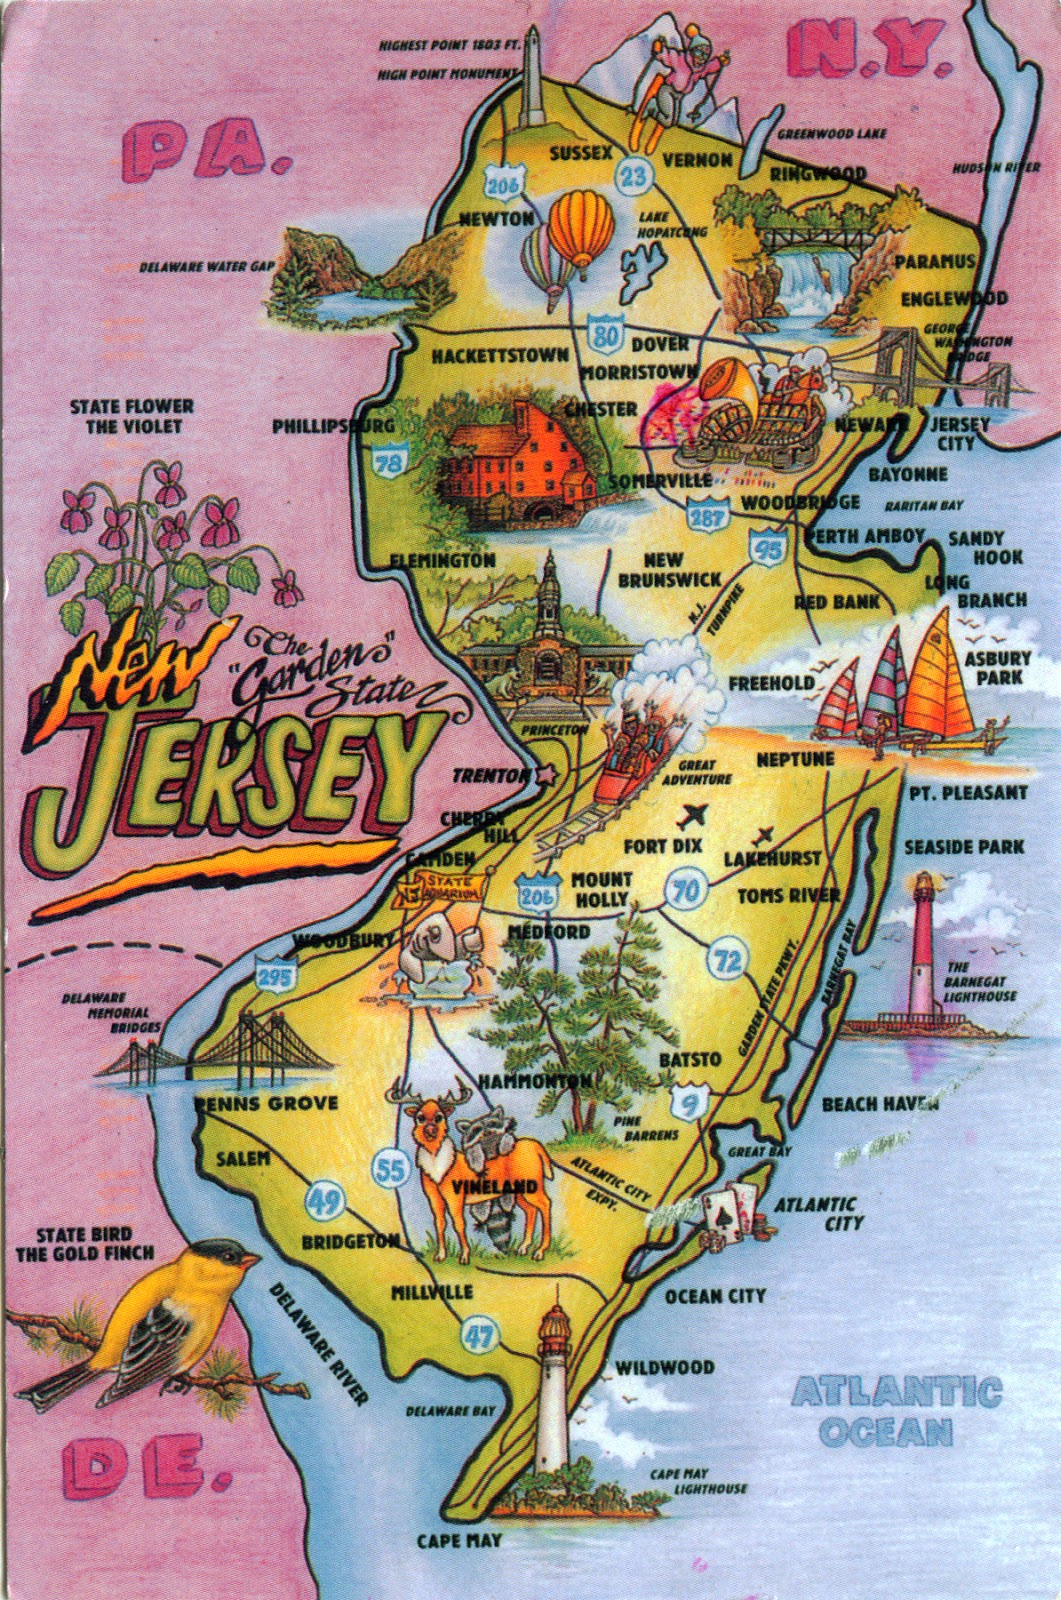 WORLD COME TO MY HOME UNITED STATES New Jersey New - 13 original us states map